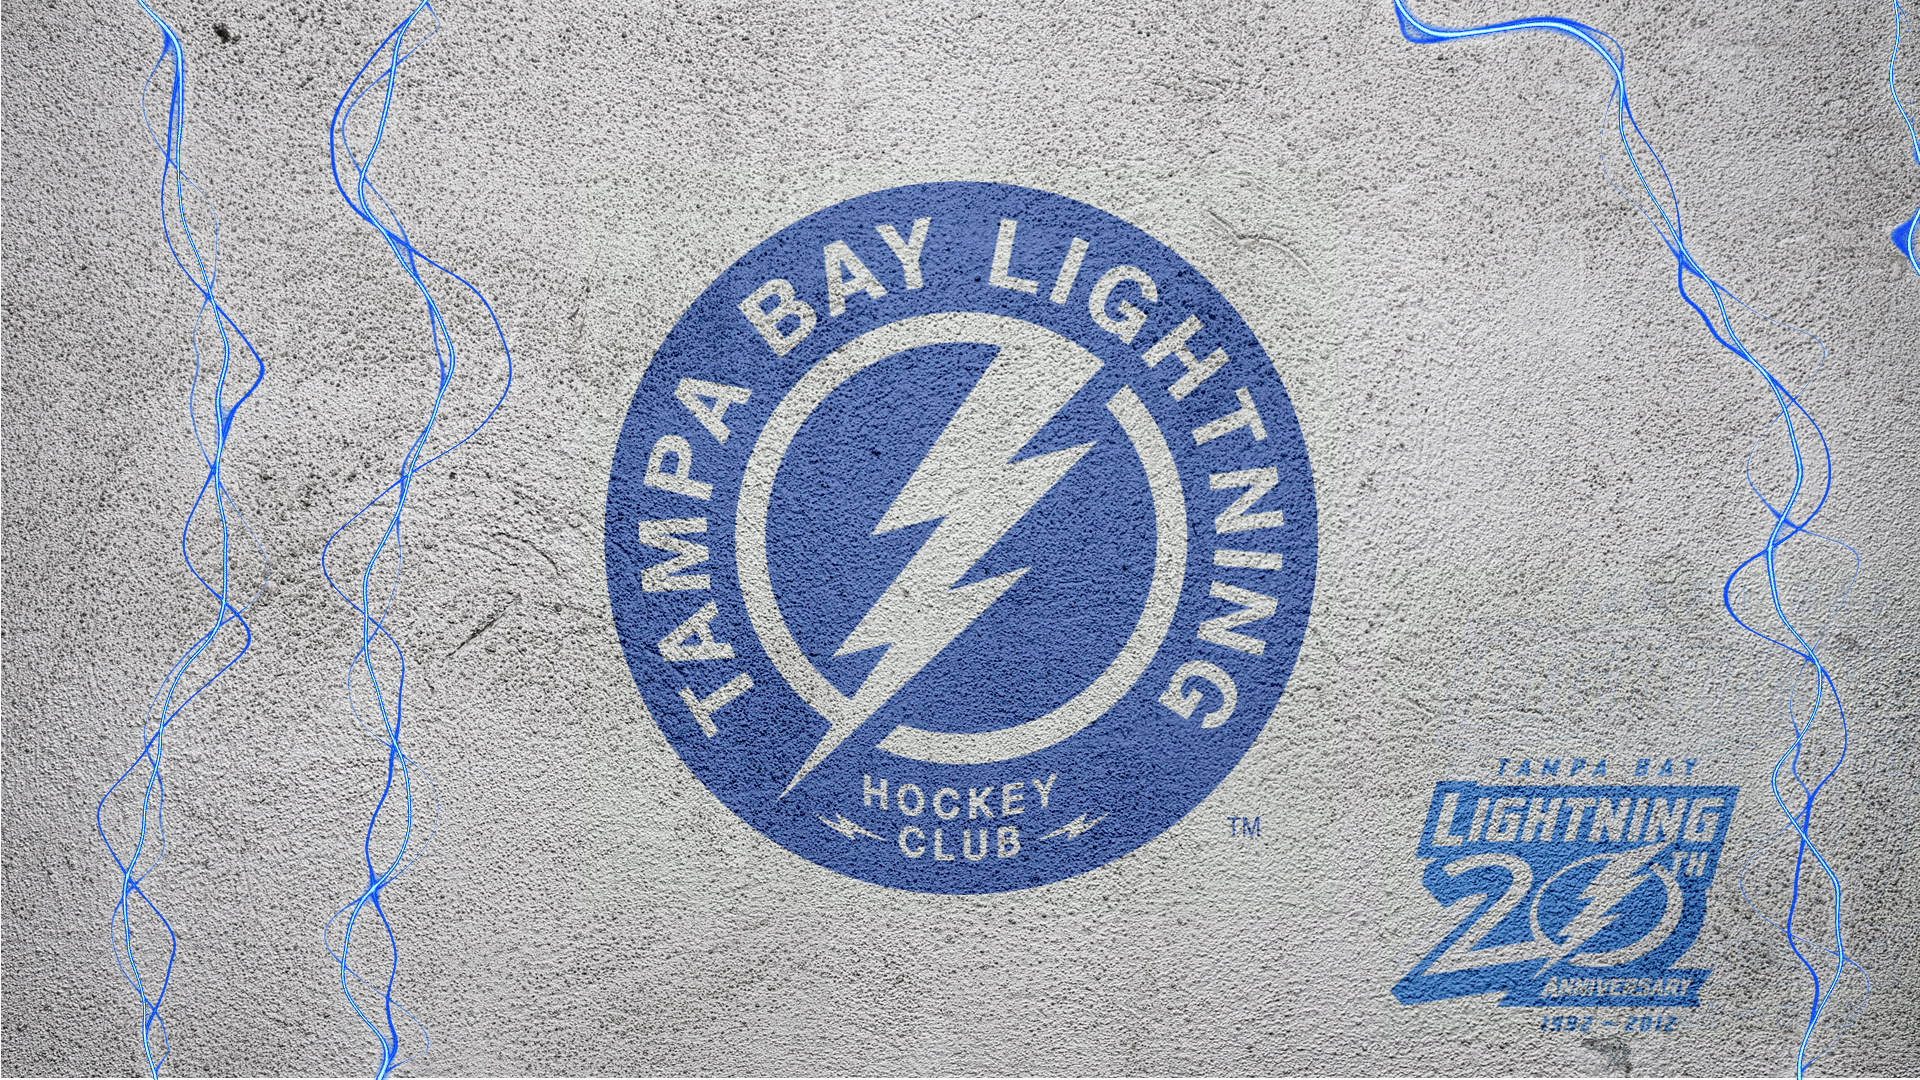 NHL Tampa Bay Lightning Shoulder Logo 2012 by Realyze 1920x1080